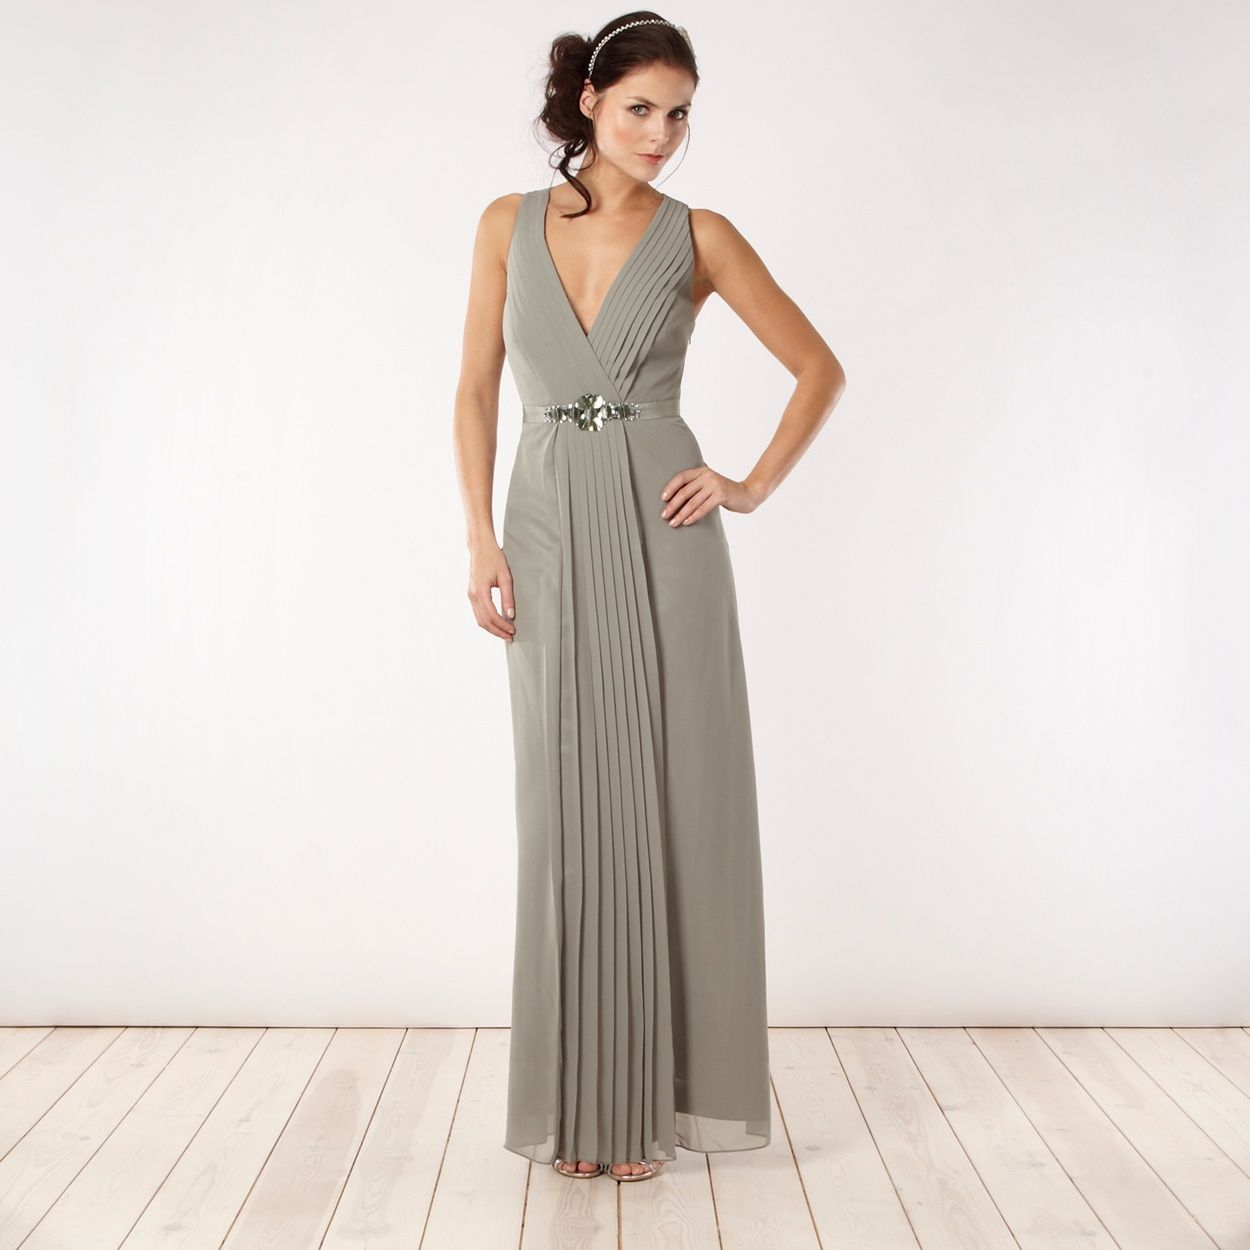 No 1 jenny packham designer light green embellished waist dress 1 jenny packham designer light green embellished waist dress at debenhams mobile bridesmaid y possible ombrellifo Image collections